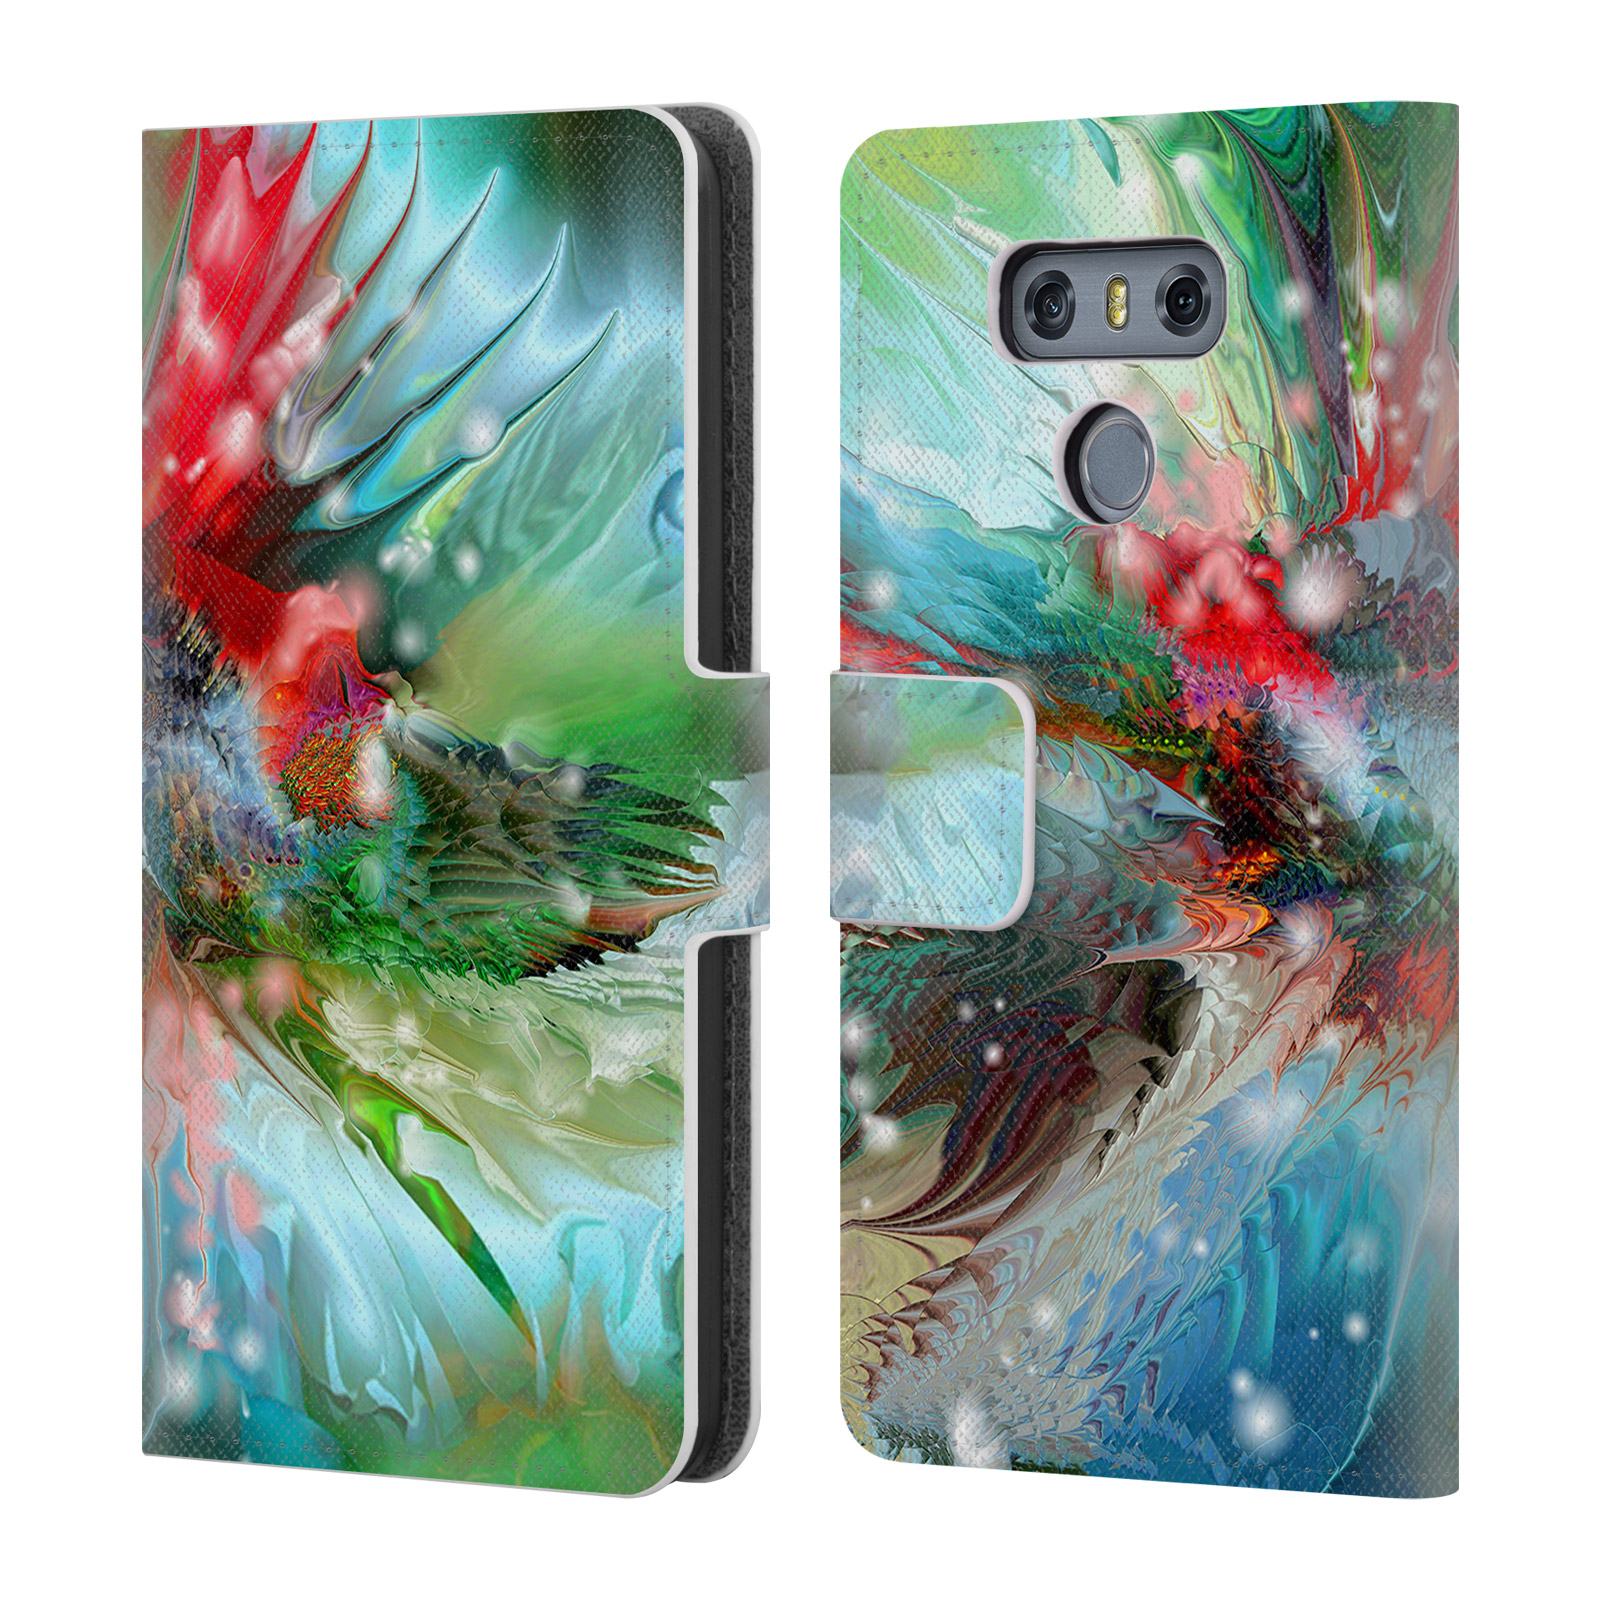 OFFICIAL-RUNA-SEA-CREATURES-LEATHER-BOOK-WALLET-CASE-COVER-FOR-LG-PHONES-1